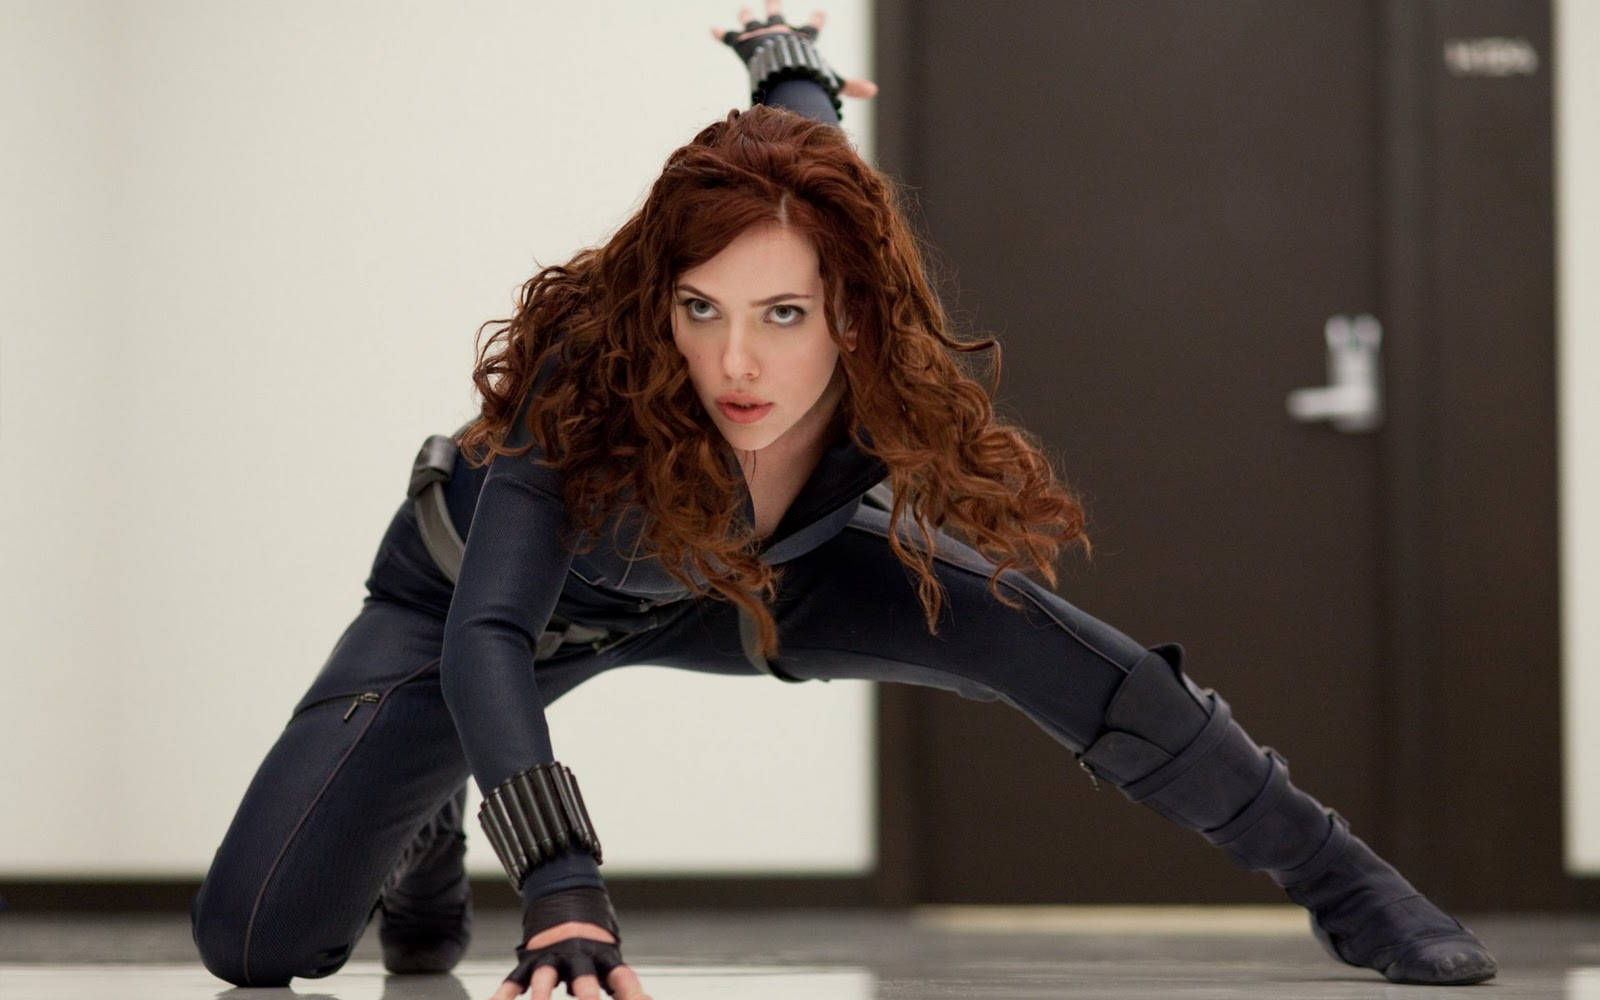 Natalia Romanoff Gallery Marvel Movies Wikia - natasha romanoff black widow wallpapers